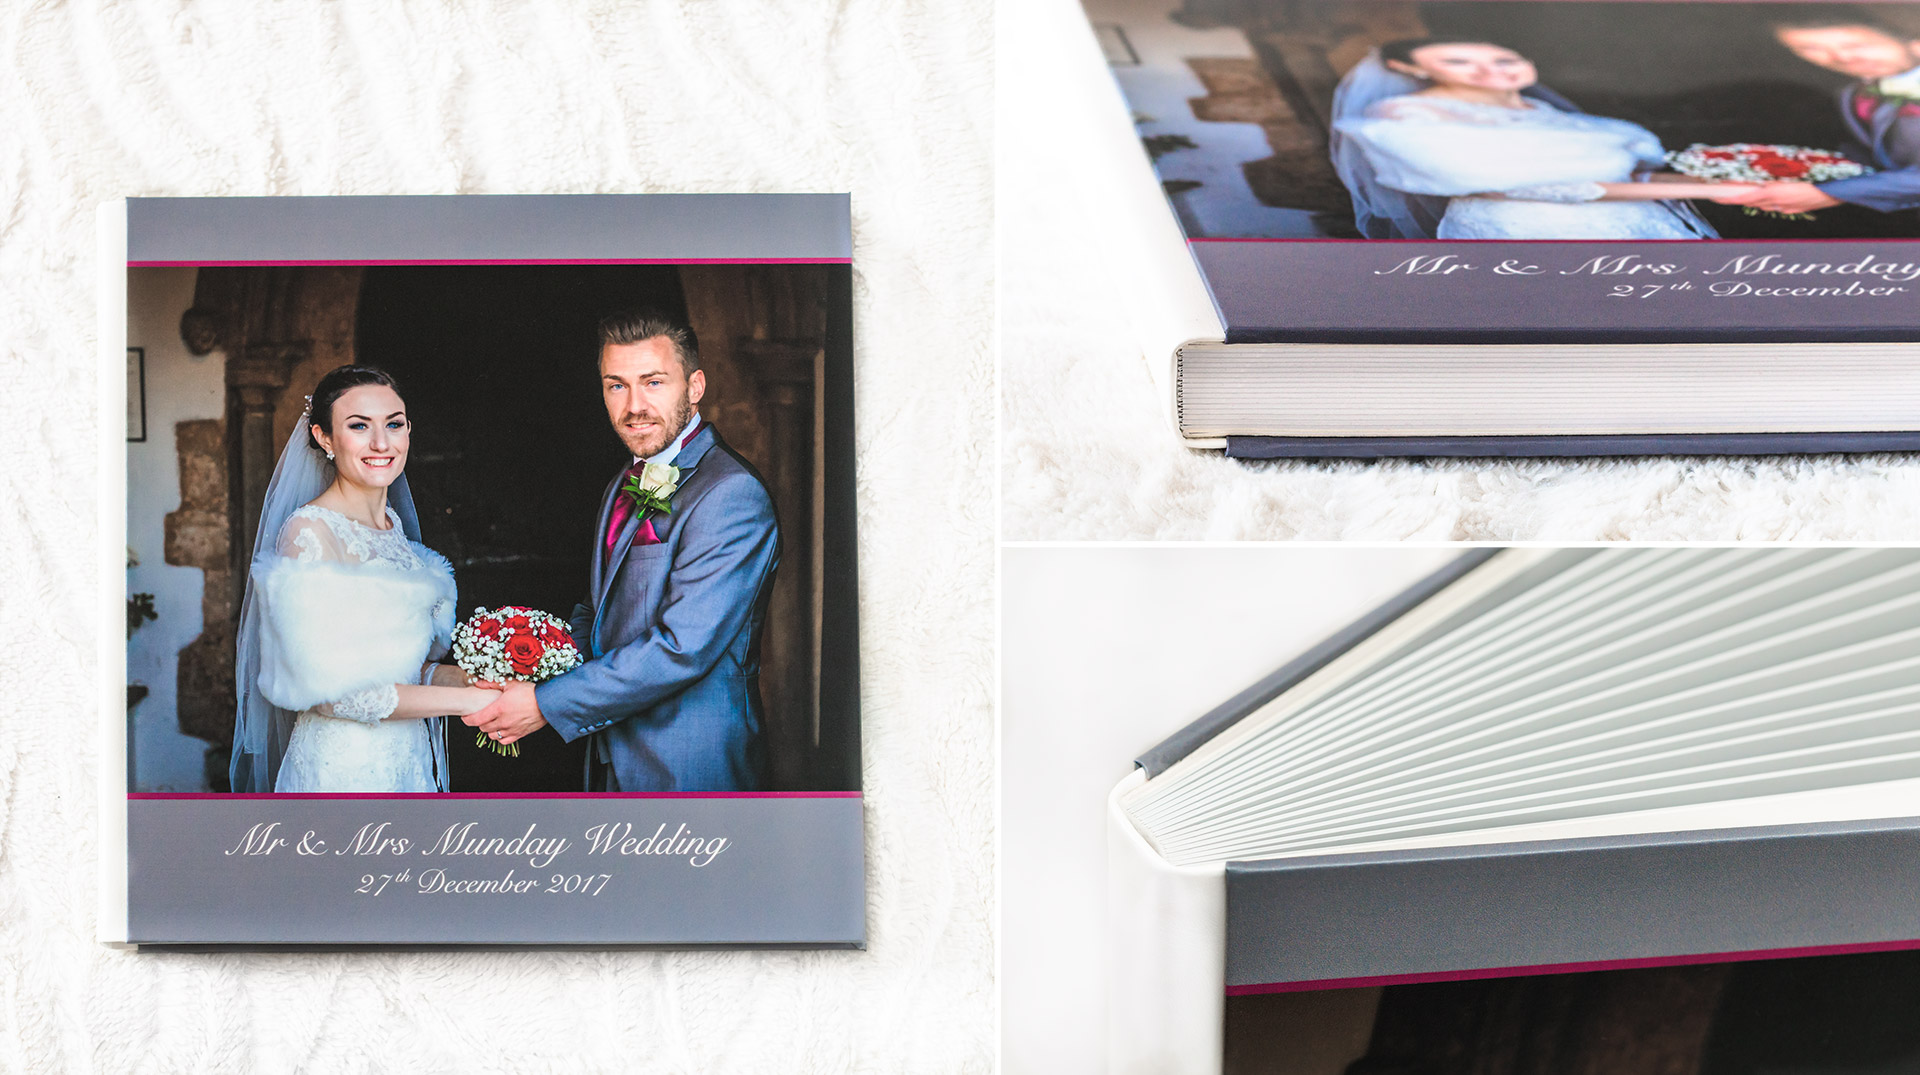 Album Wedding Photography Packages